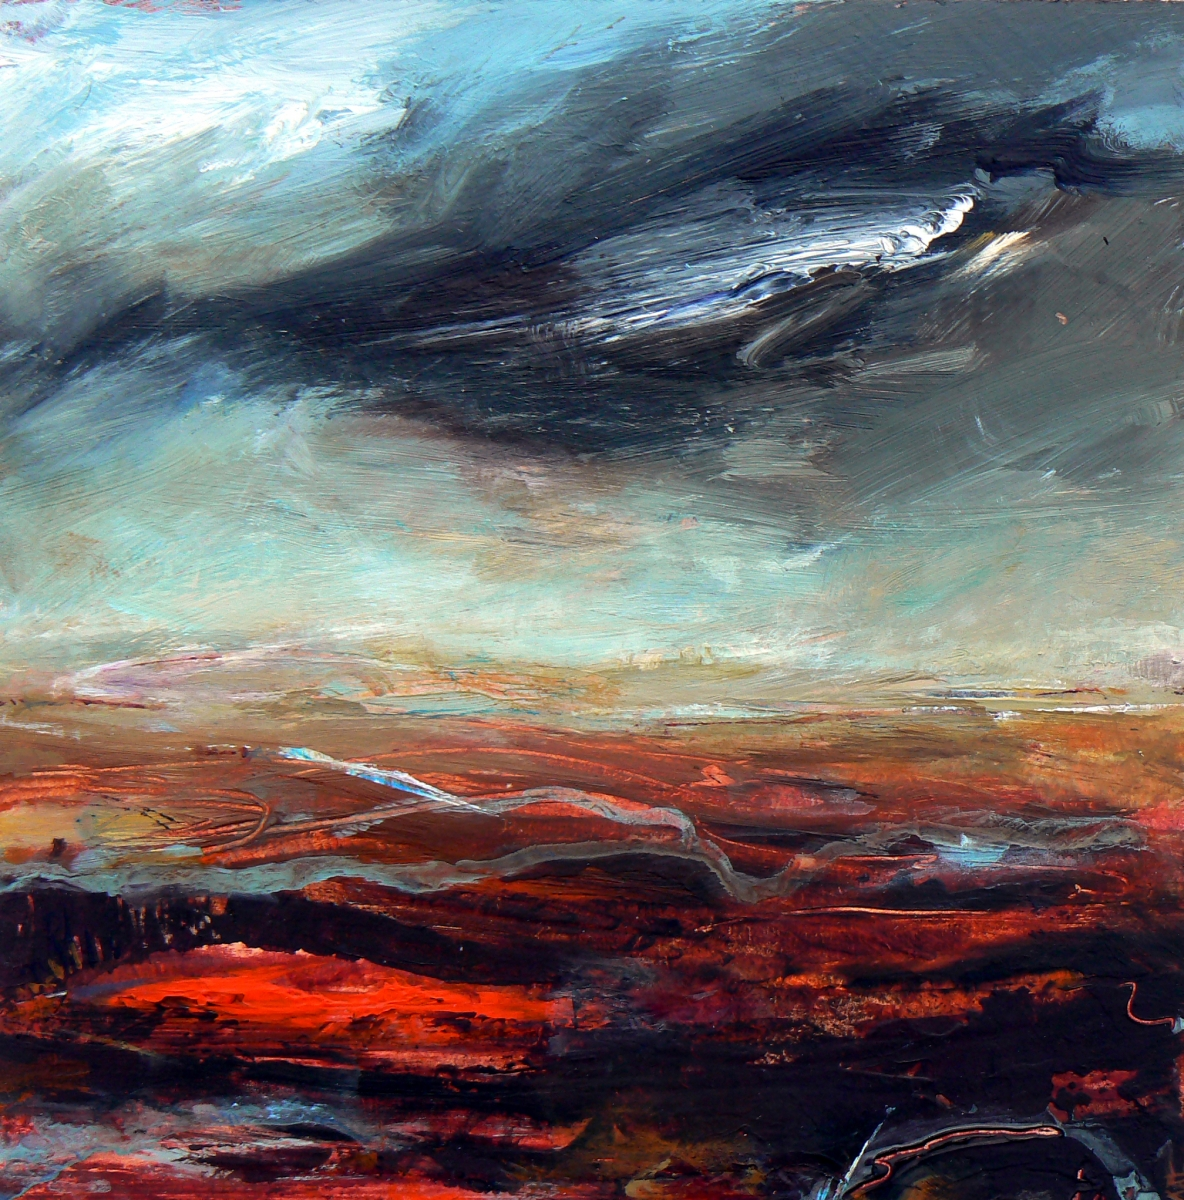 Storm Over Heath, 25 x 25cm, acrylic on wood panel, (sold)